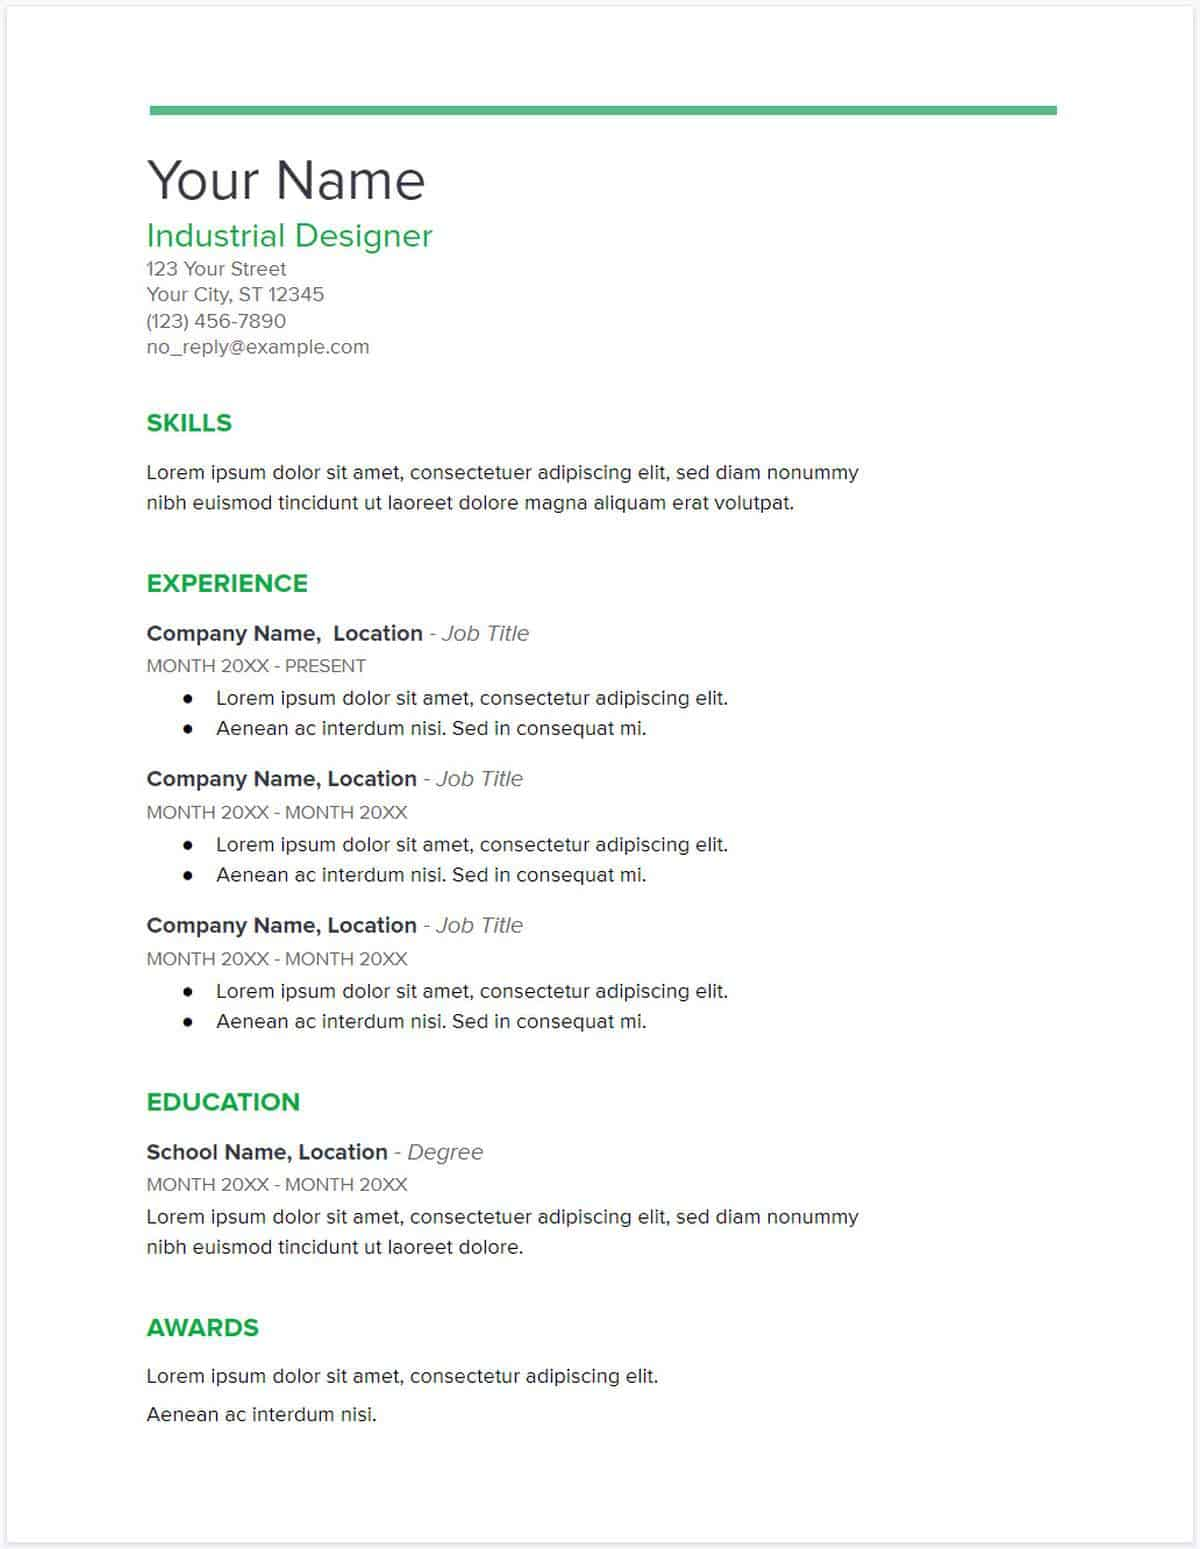 Google Docs Resume Template (Spearmint) | Google Docs Resume Template | Google Docs Resume Templates To Ace Your Next Interview